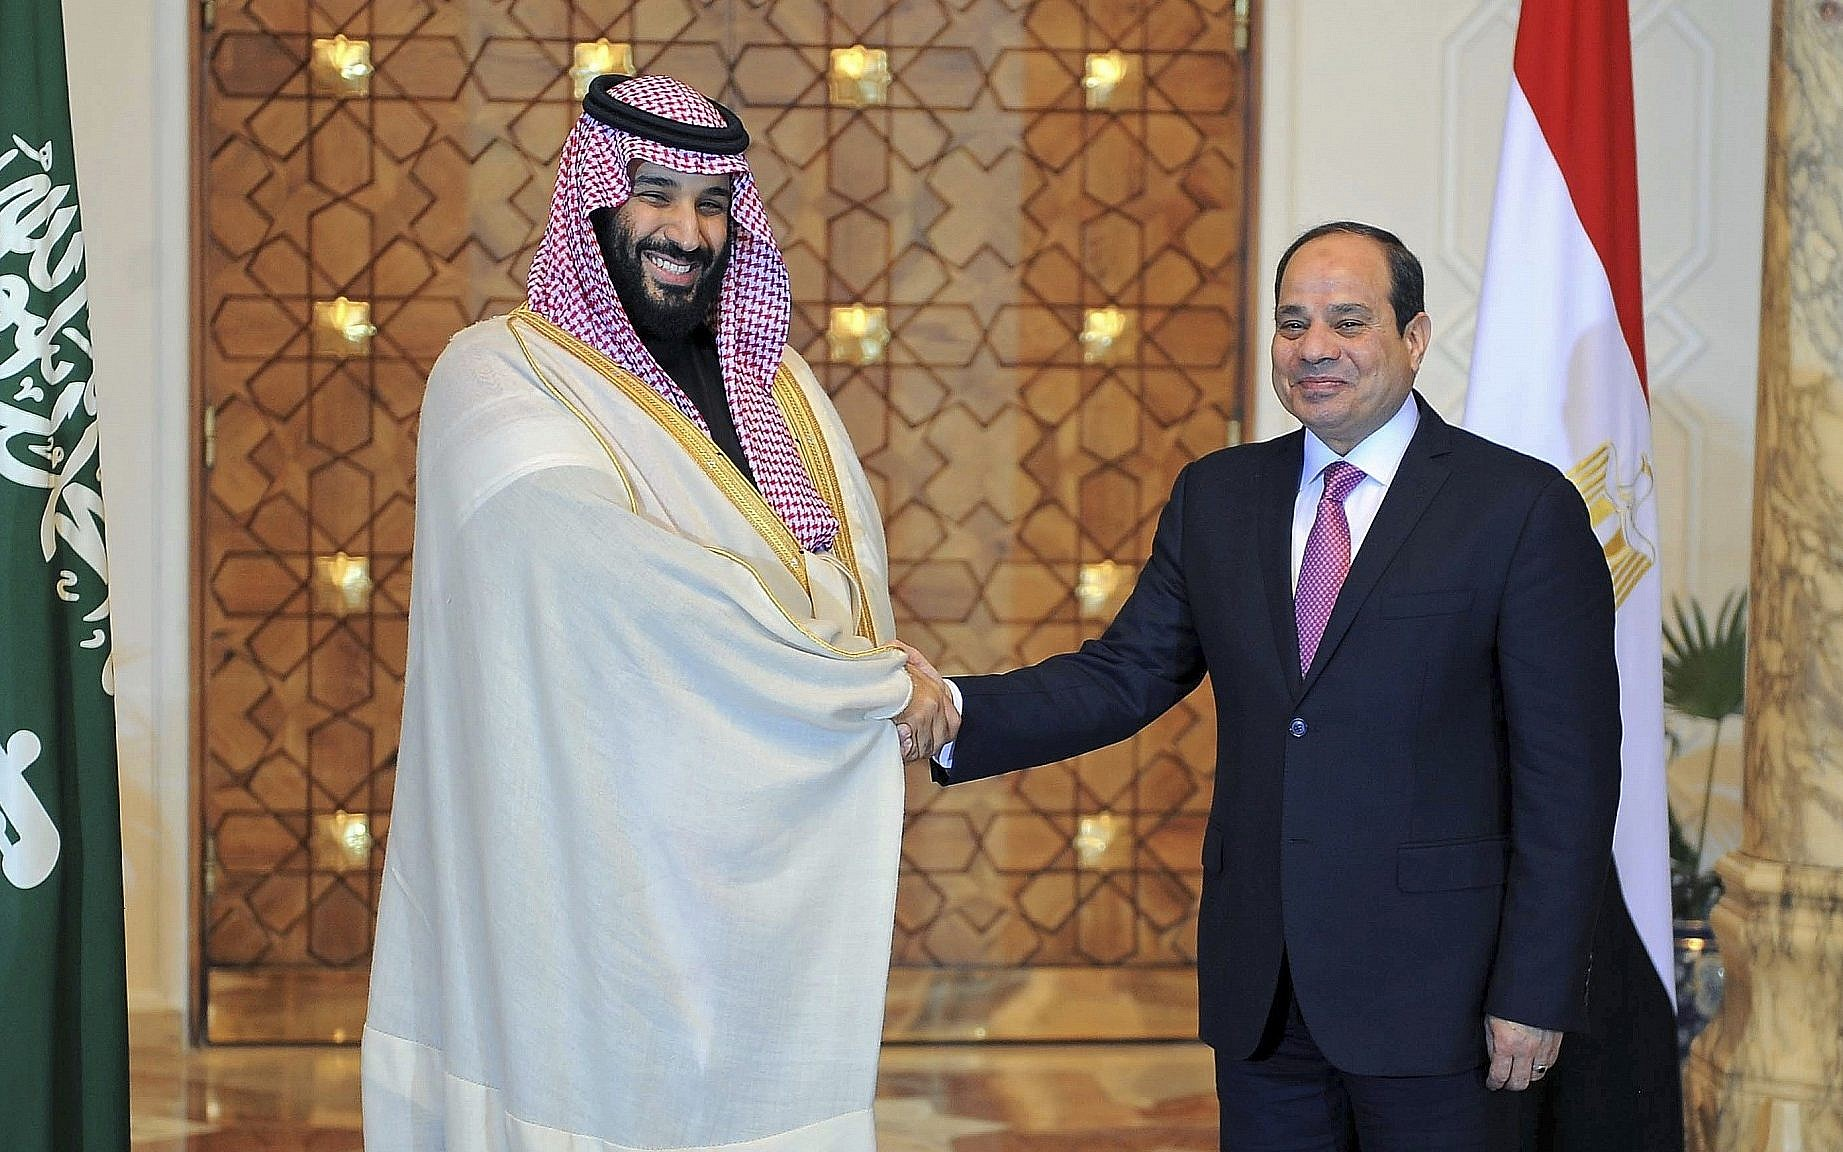 Crown Prince meets Azhar chief, Coptic Pope in Cairo